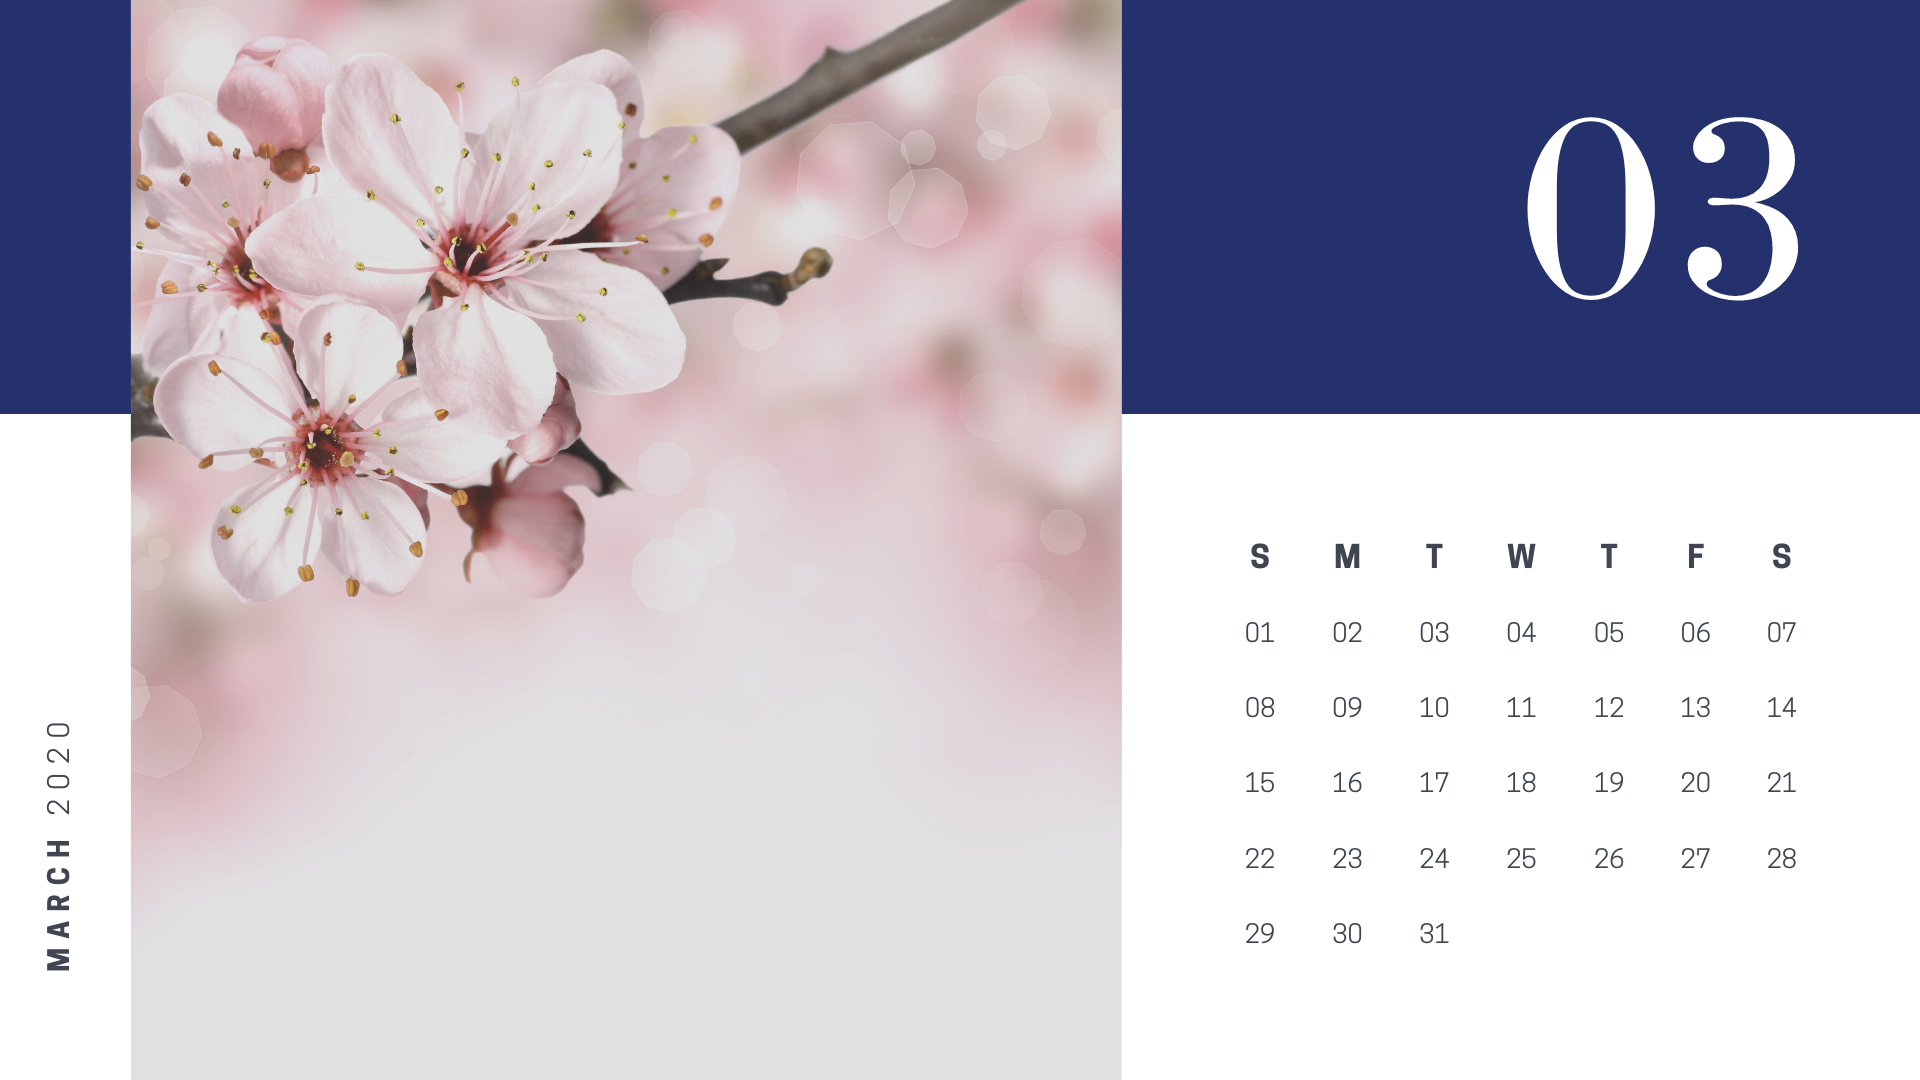 30 March 2020 Calendars You Can Download and Print 1920x1080